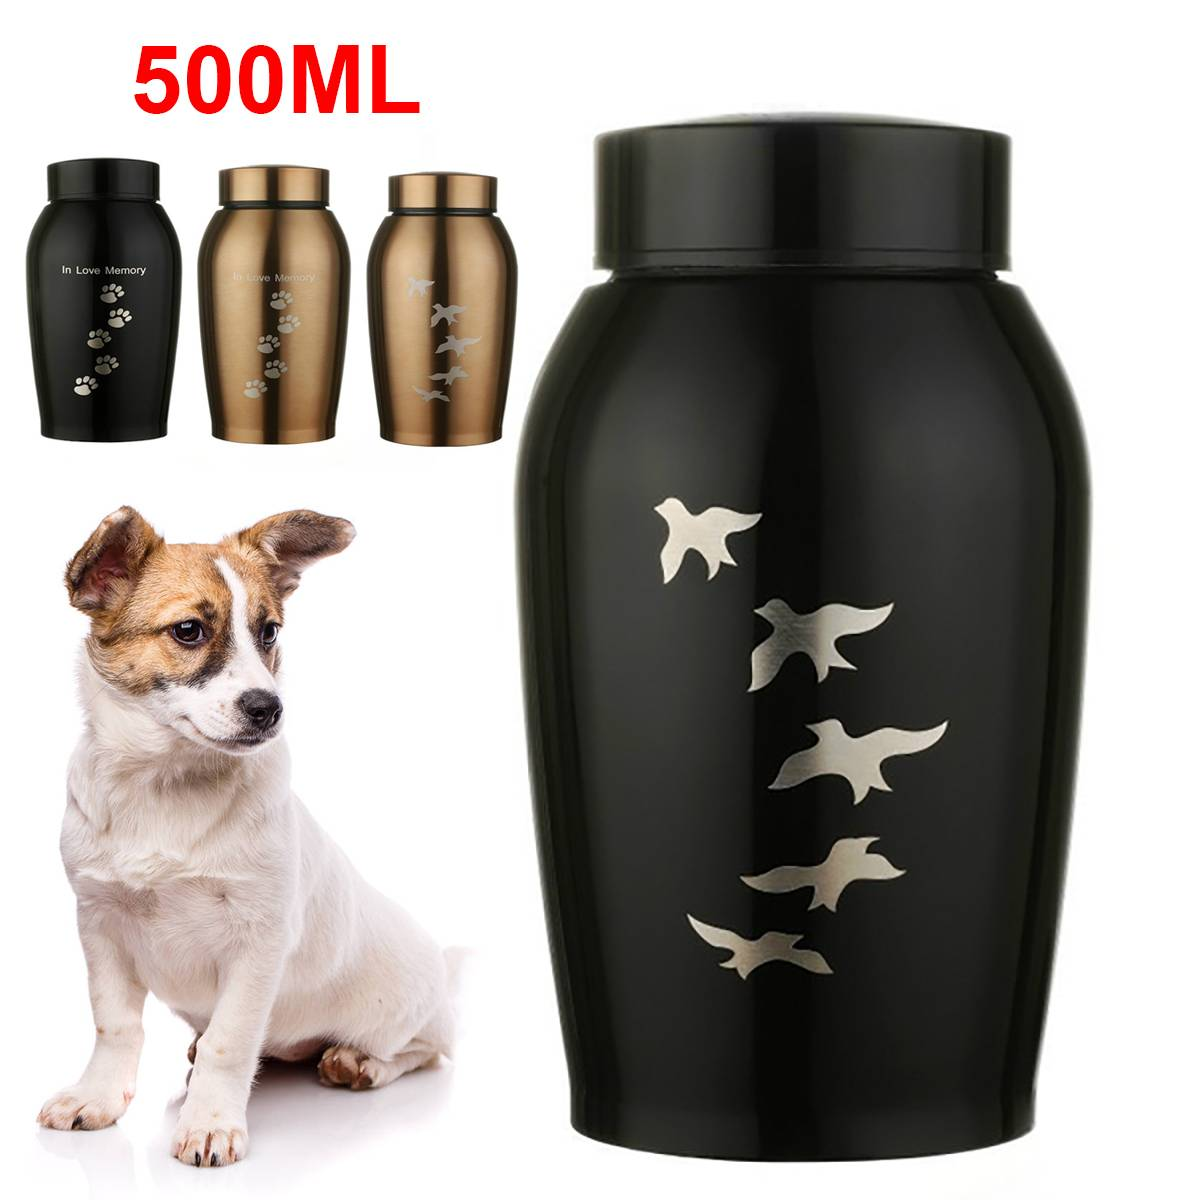 Gold/Black Stainless Steel Urns Pets Dog Cat Birds Mouse Cremation Ashes Urn Keepsake Casket Columbarium Pets Memorials